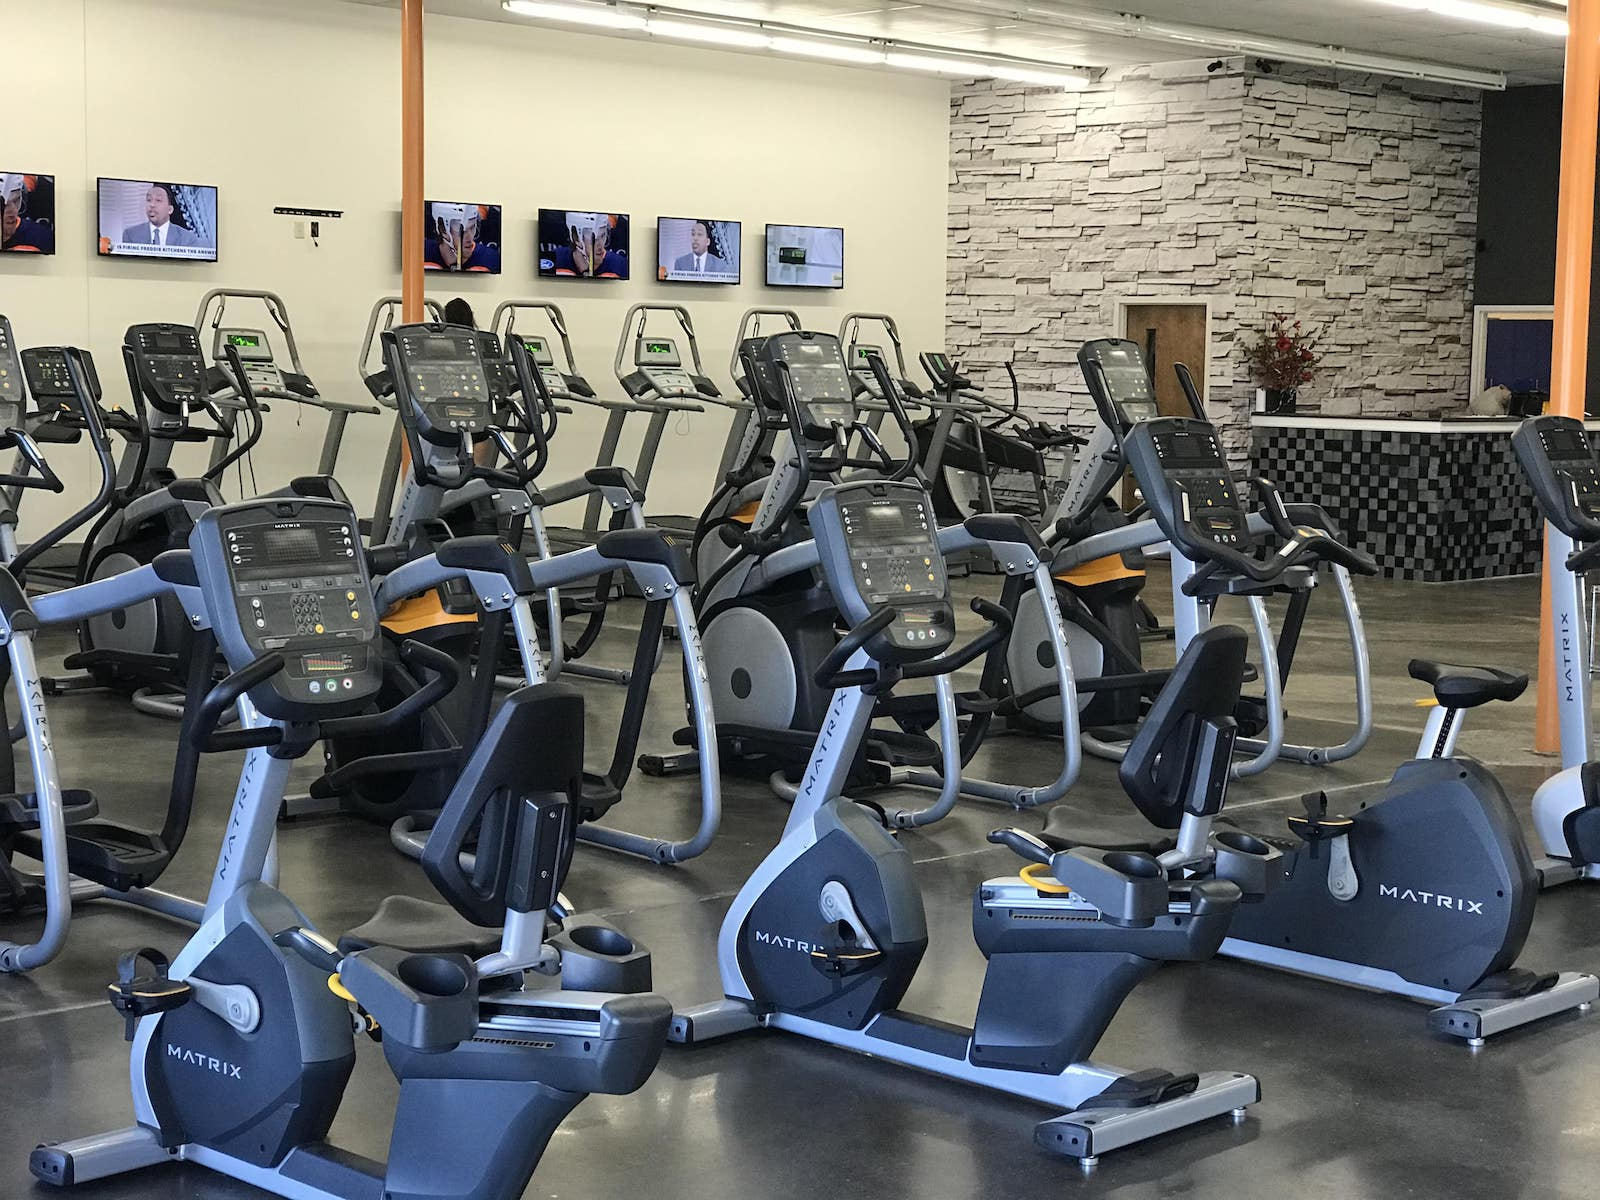 Pulse Premier Fitness The Newest 24 7 Gym In Benton With Tanning And Sauna